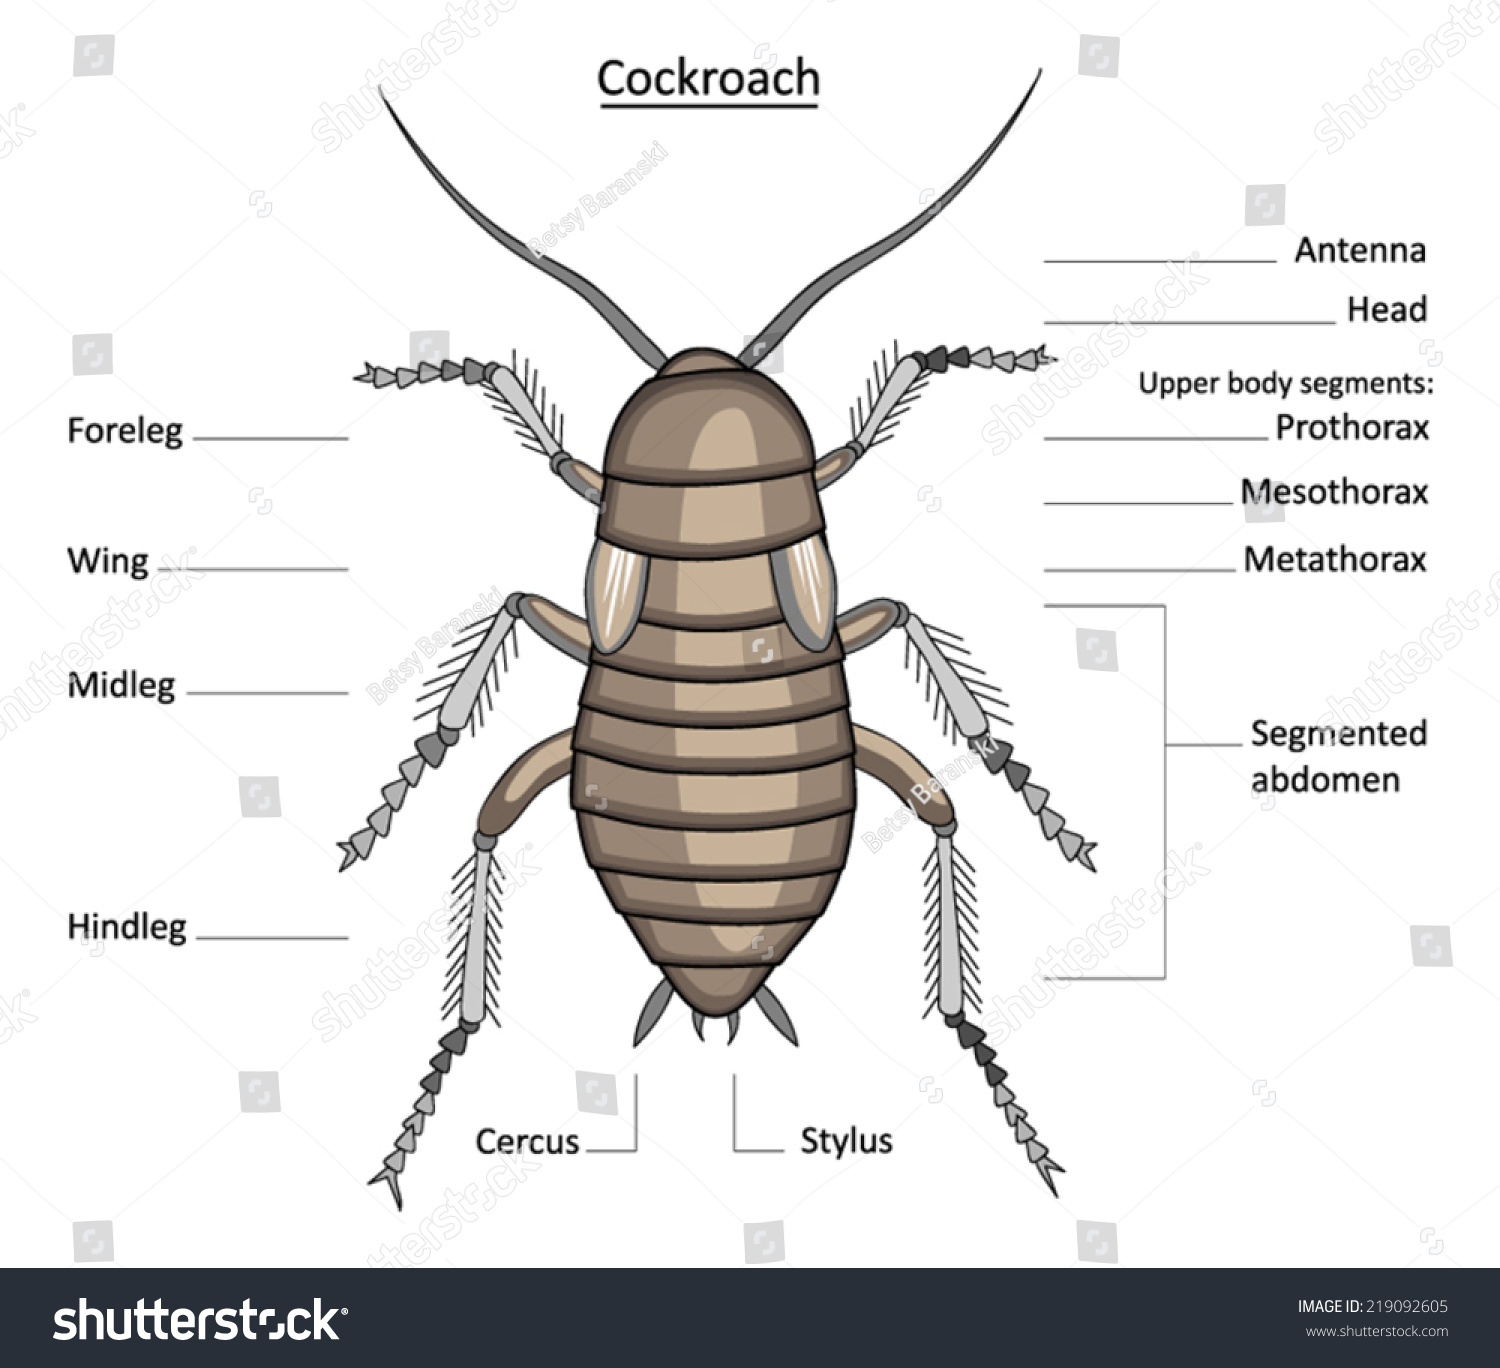 Cockroach Anatomy Line Art Labels Isolated Stock Vector (Royalty ...